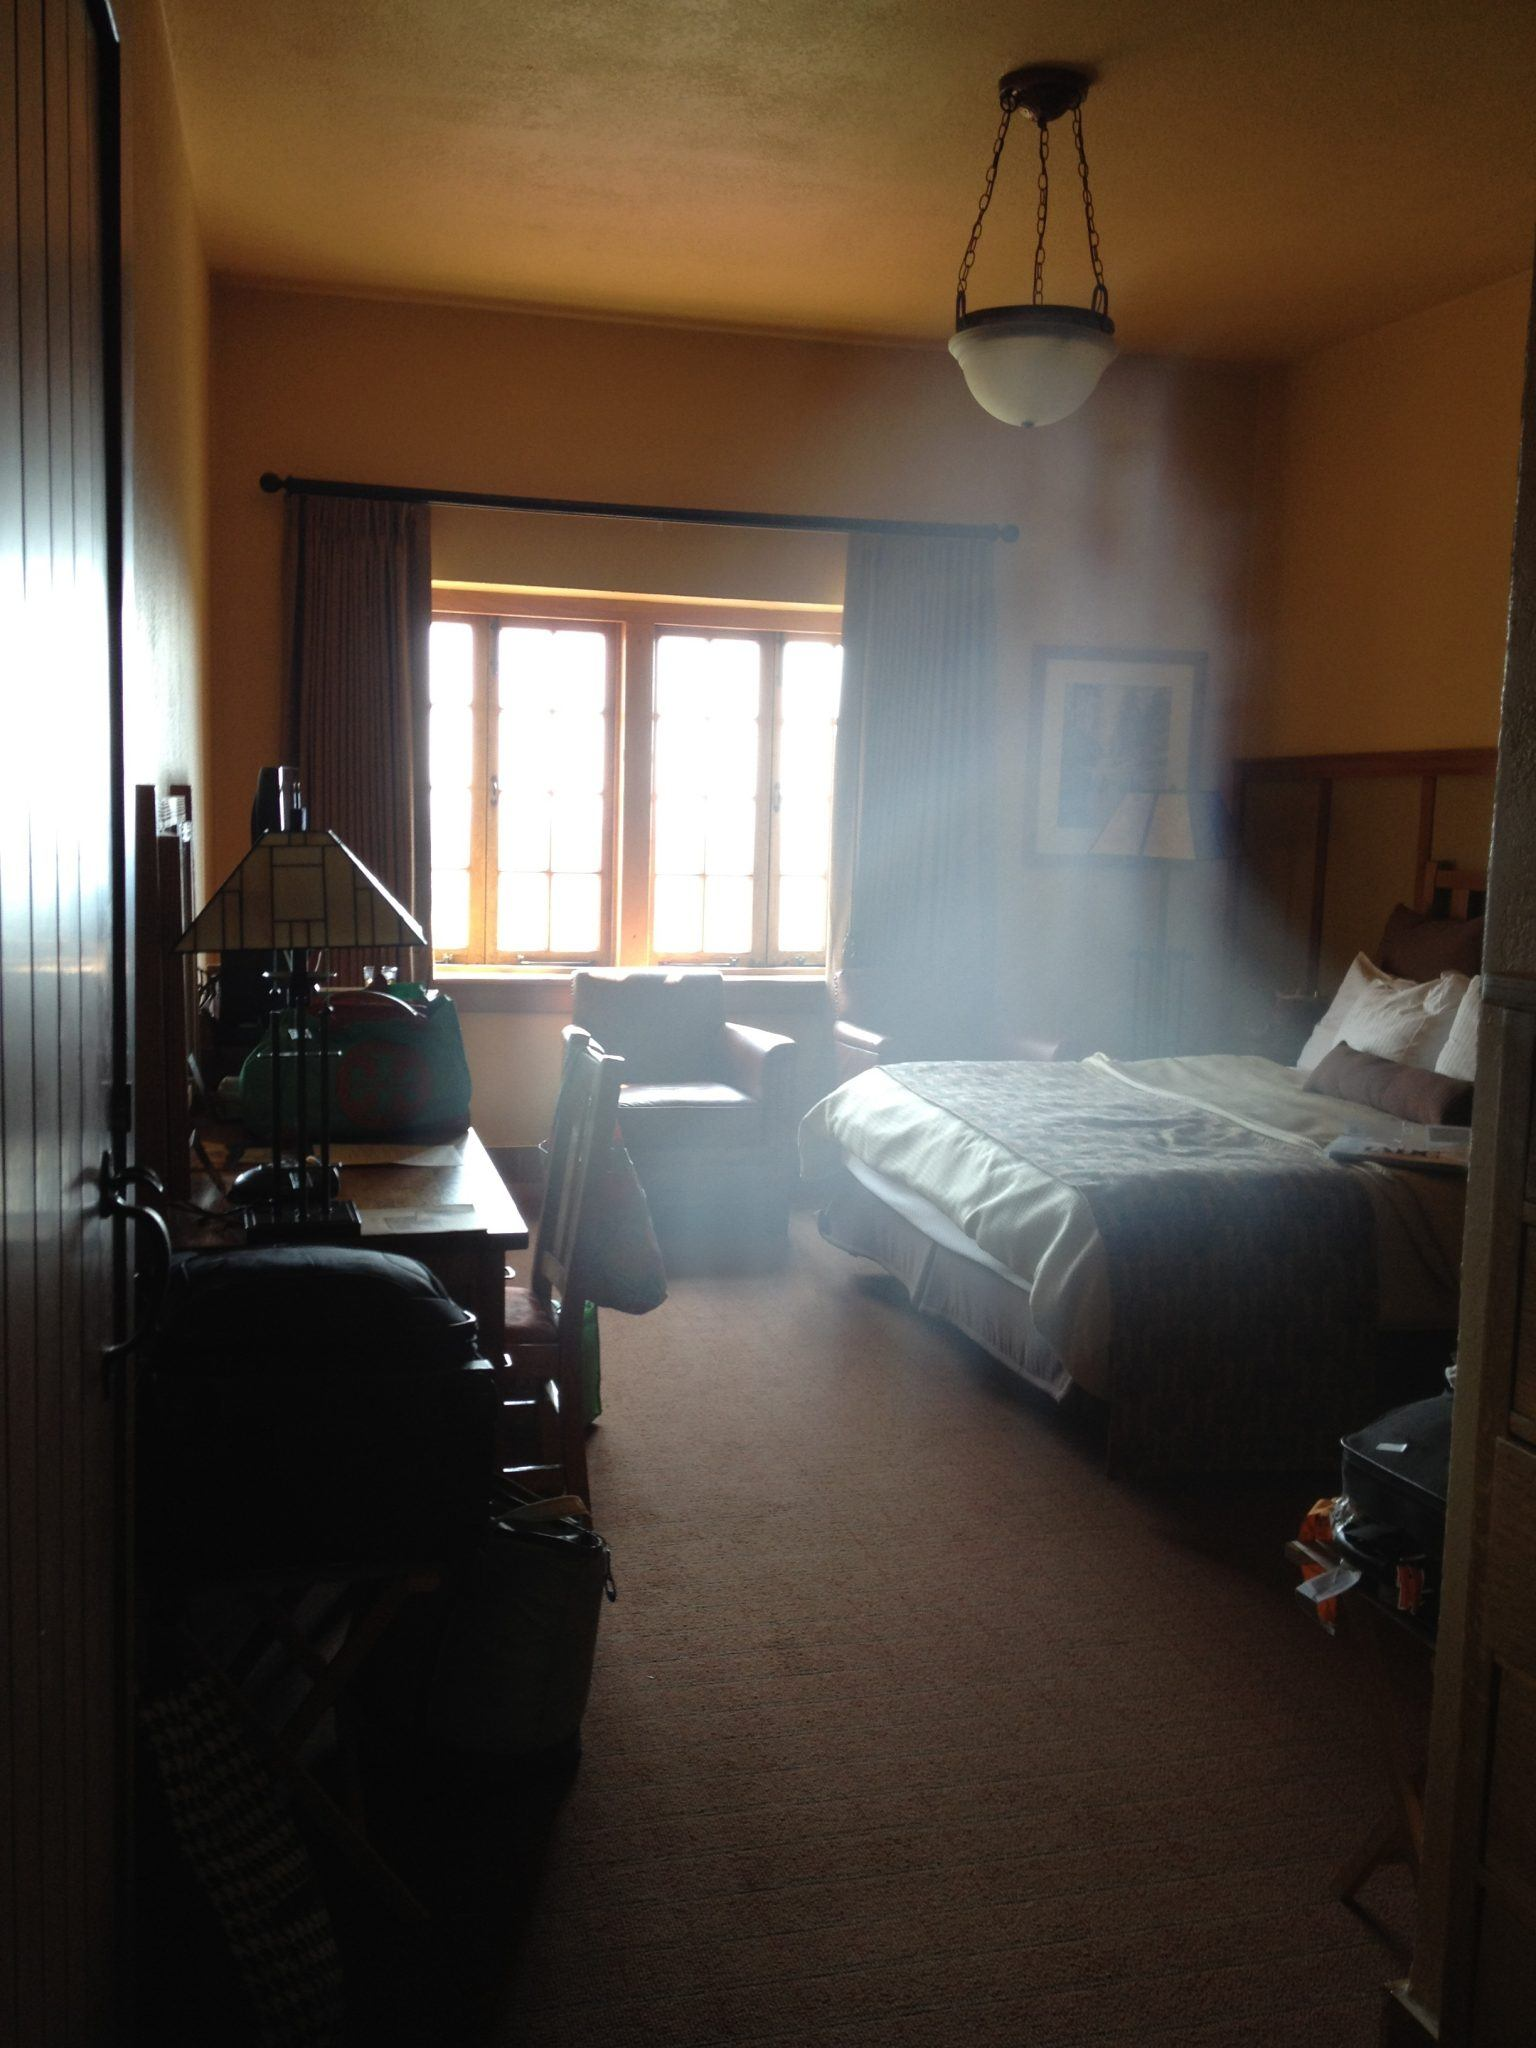 Guests took a photograph of The Pink Lady in their room.